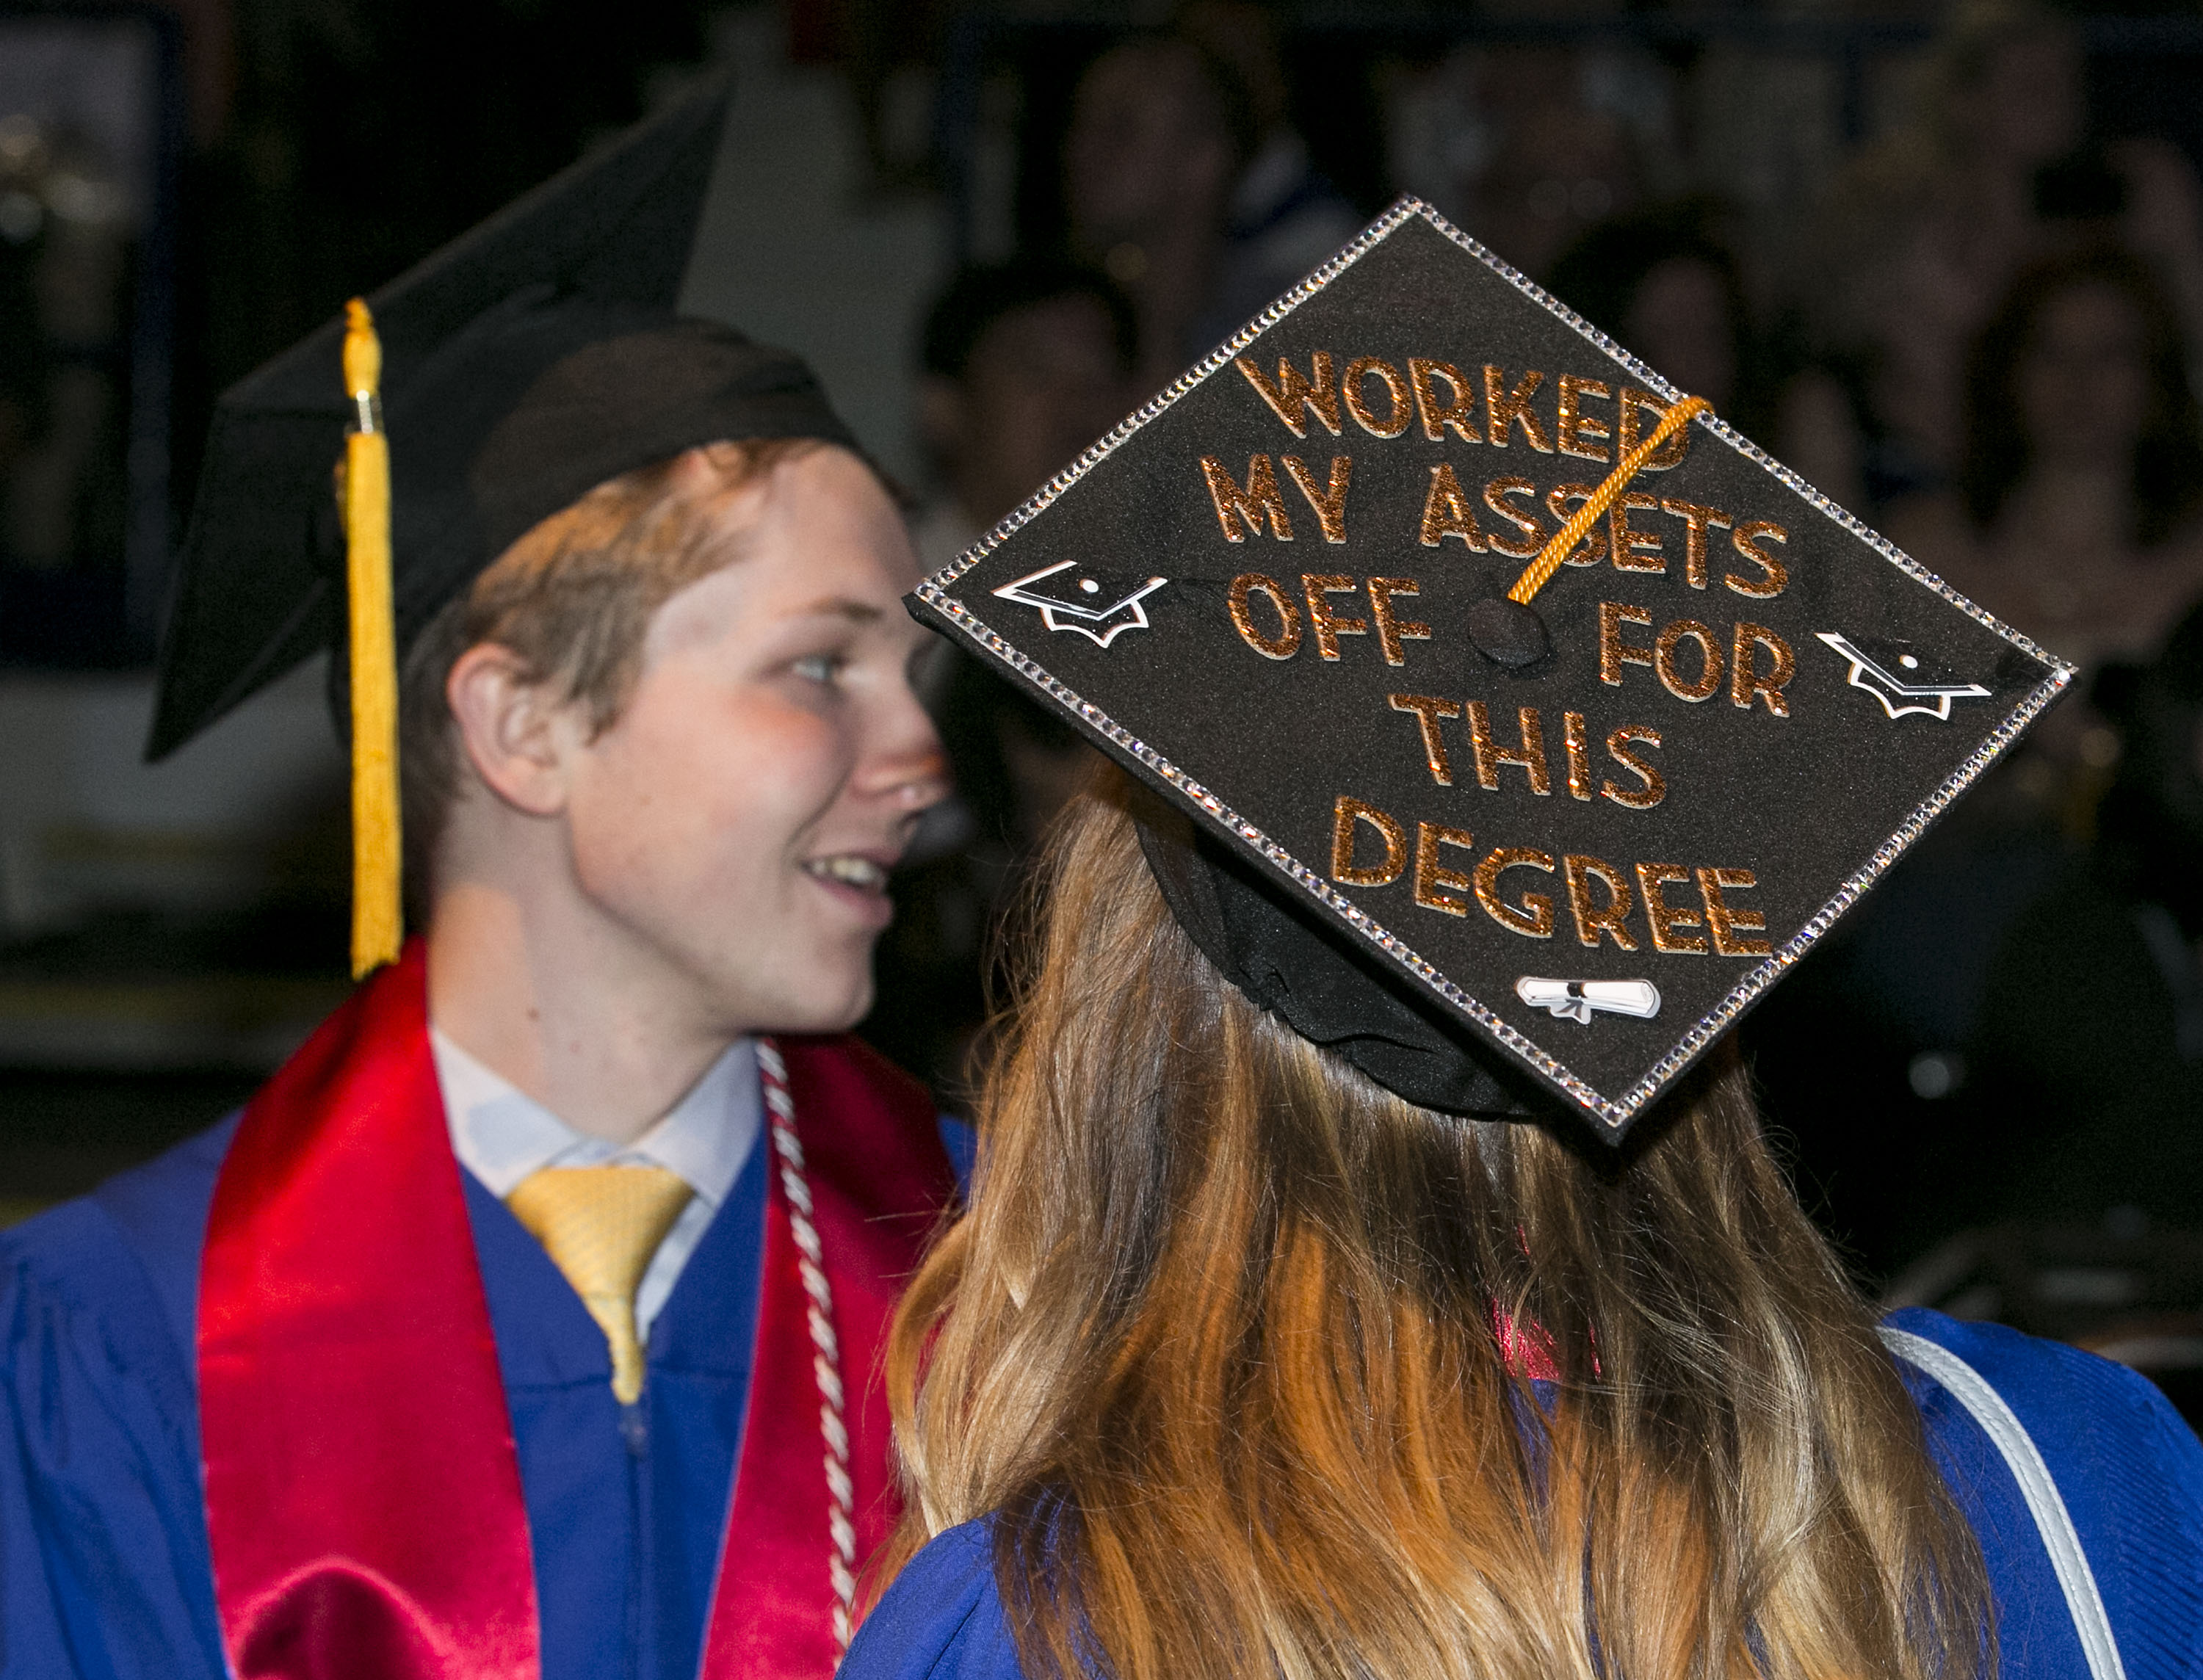 Decorated mortarboards as students make their way into the arena Sunday, June 11, 2017, during the DePaul University Driehaus College of Business commencement ceremony at the Allstate Arena in Rosemont, IL. (DePaul University/Jamie Moncrief)